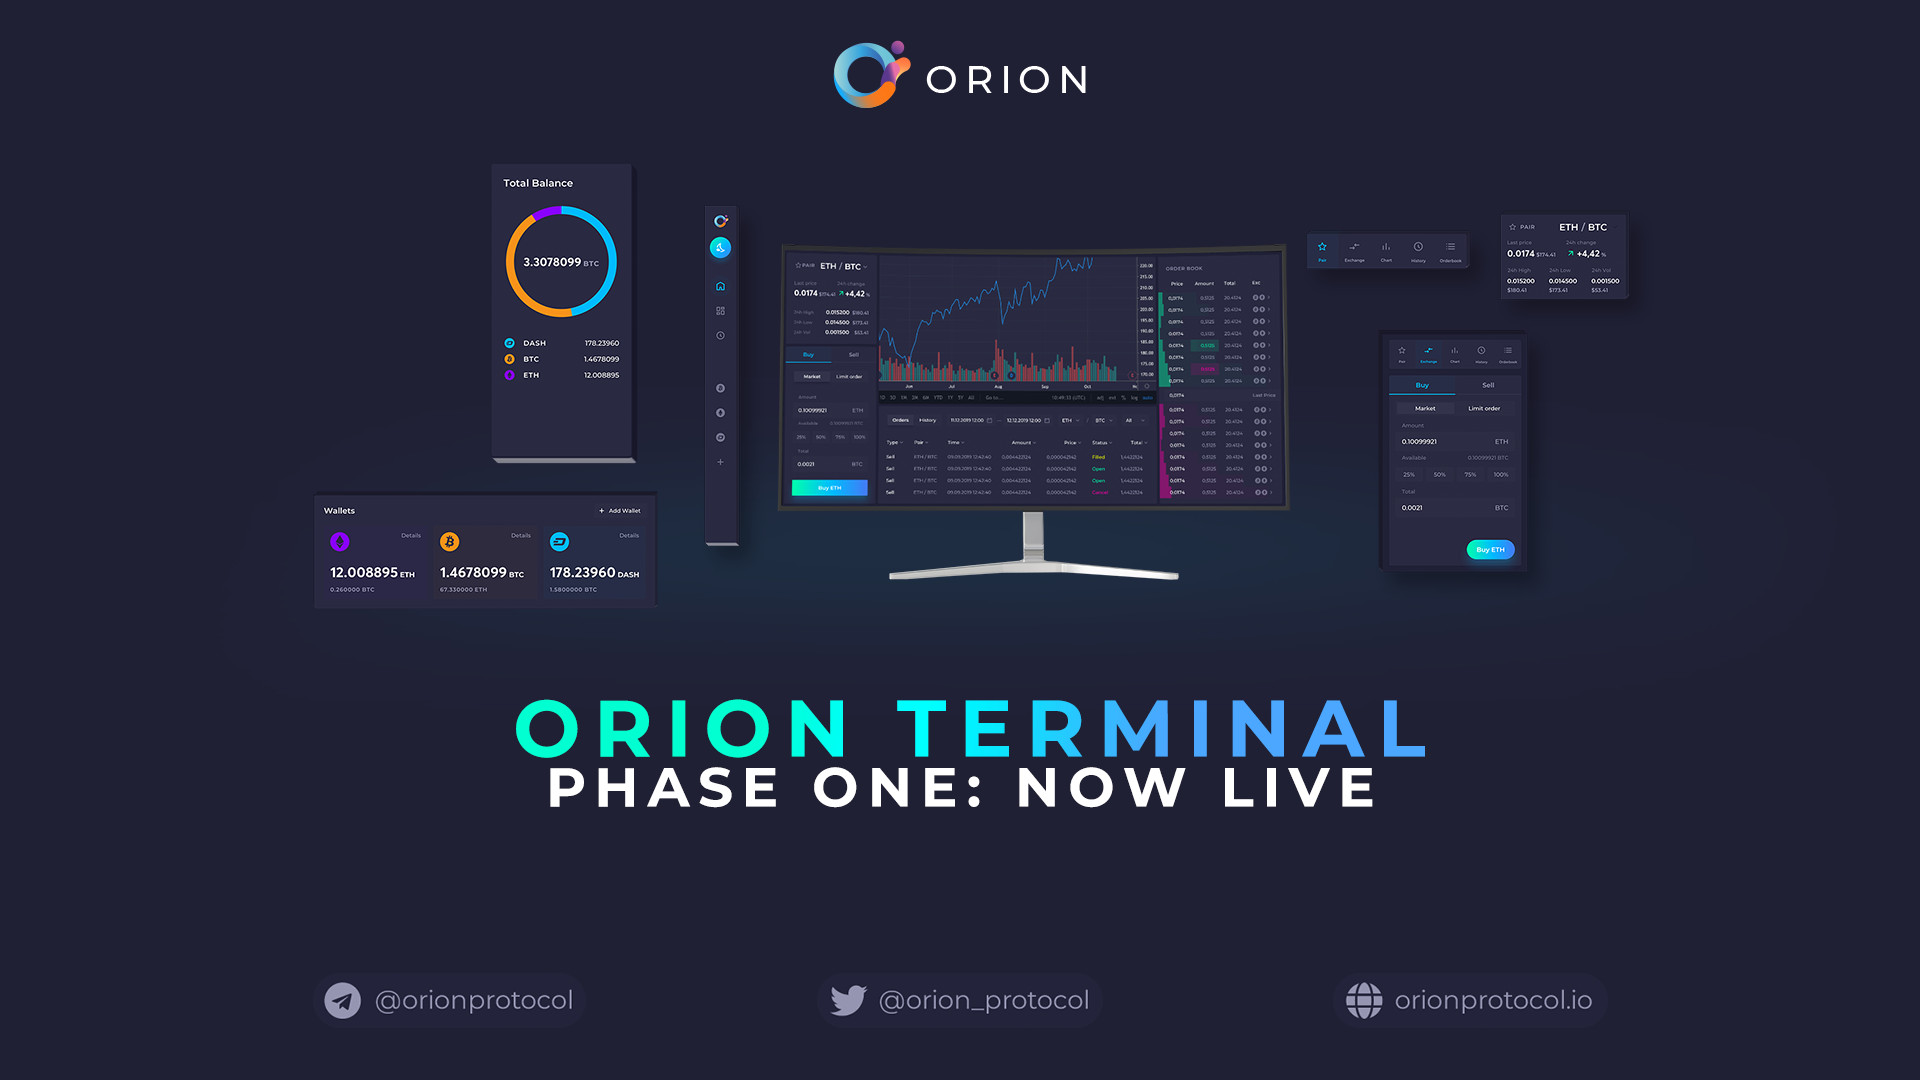 Orion Terminal: Phase One is Live